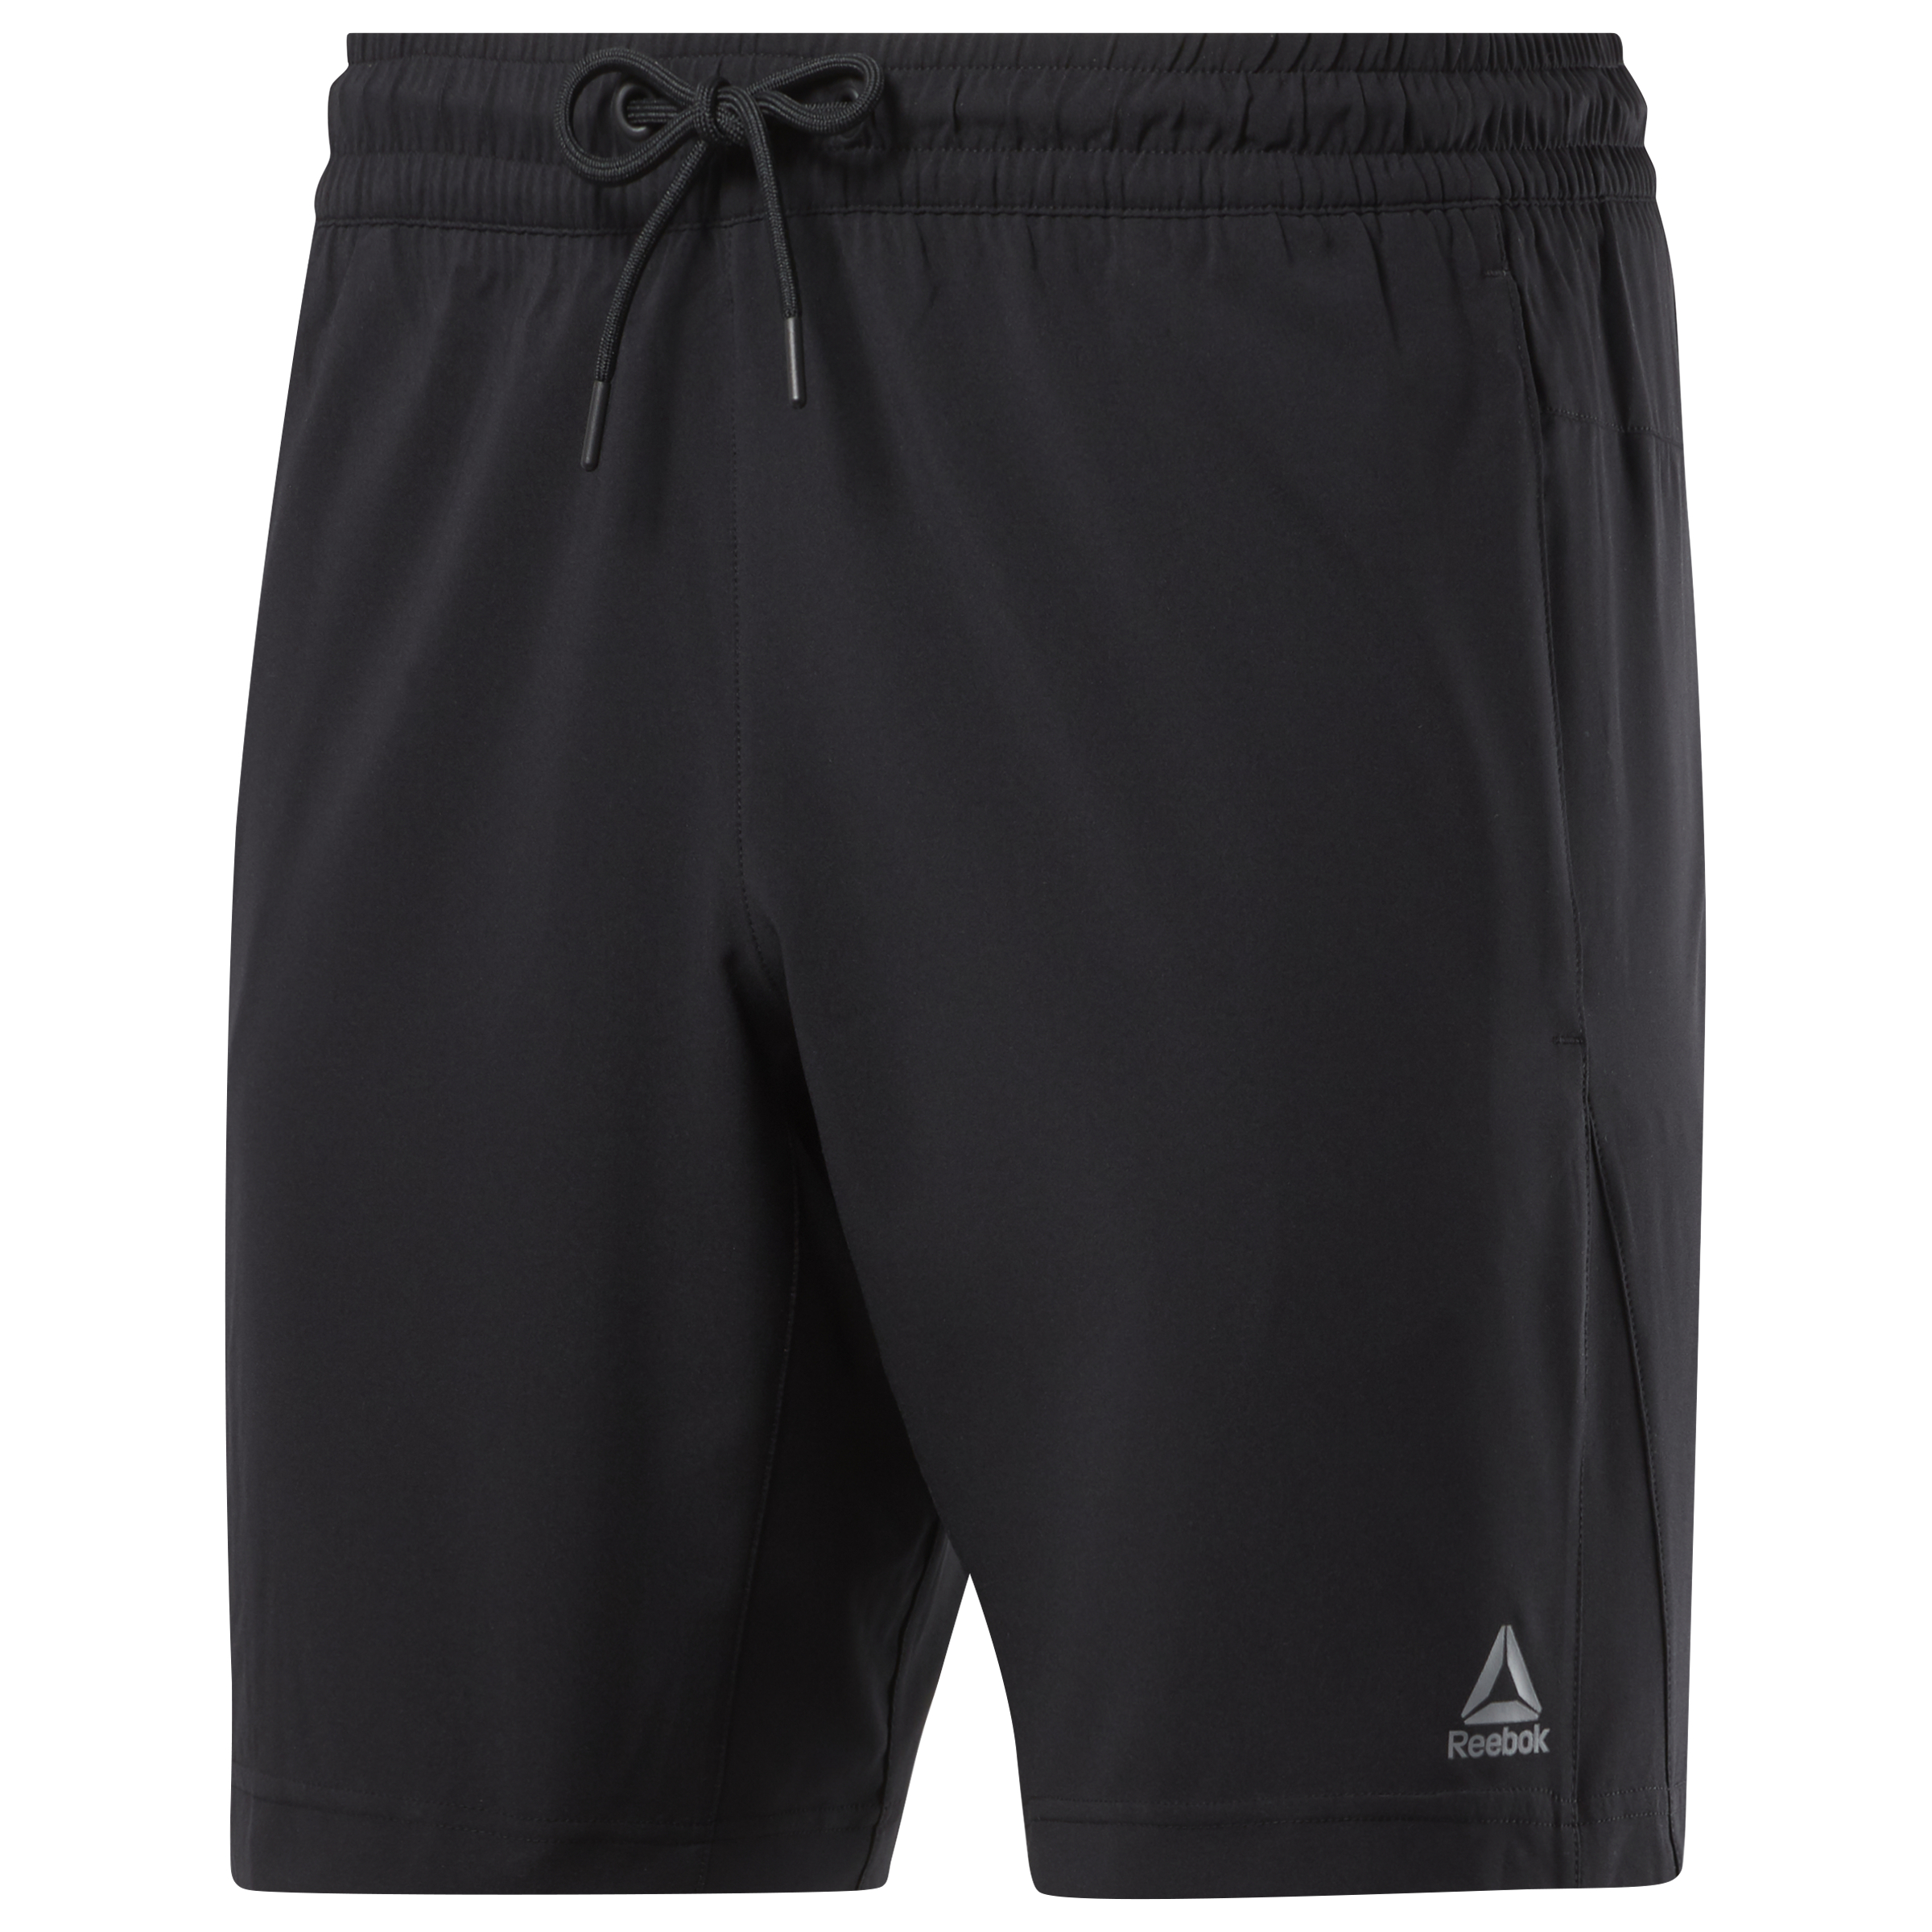 Reebok-Men-039-s-Workout-Ready-Shorts thumbnail 4